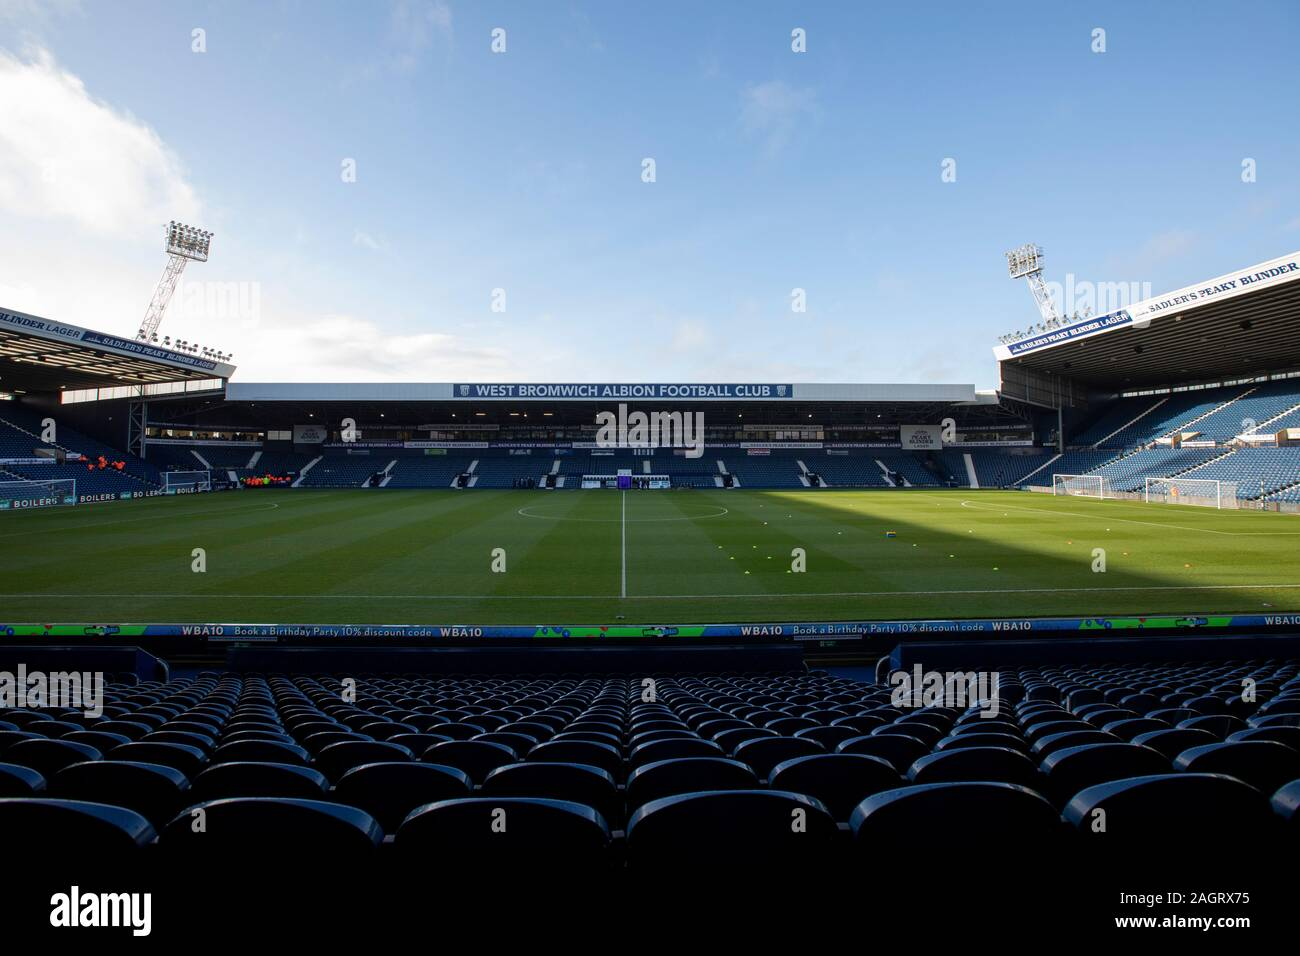 Hawthorns Stadium High Resolution Stock Photography And Images Alamy